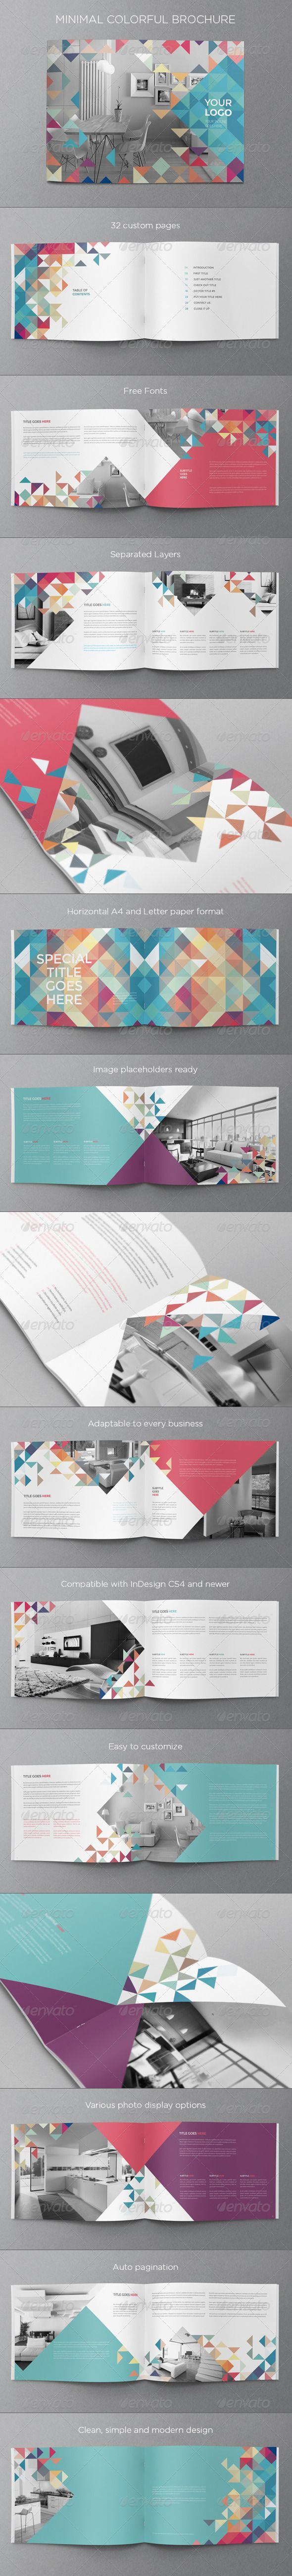 Minimal Colorful Brochure — InDesign INDD #colorful #professional • Available here → https://graphicriver.net/item/minimal-colorful-brochure/8232684?ref=pxcr